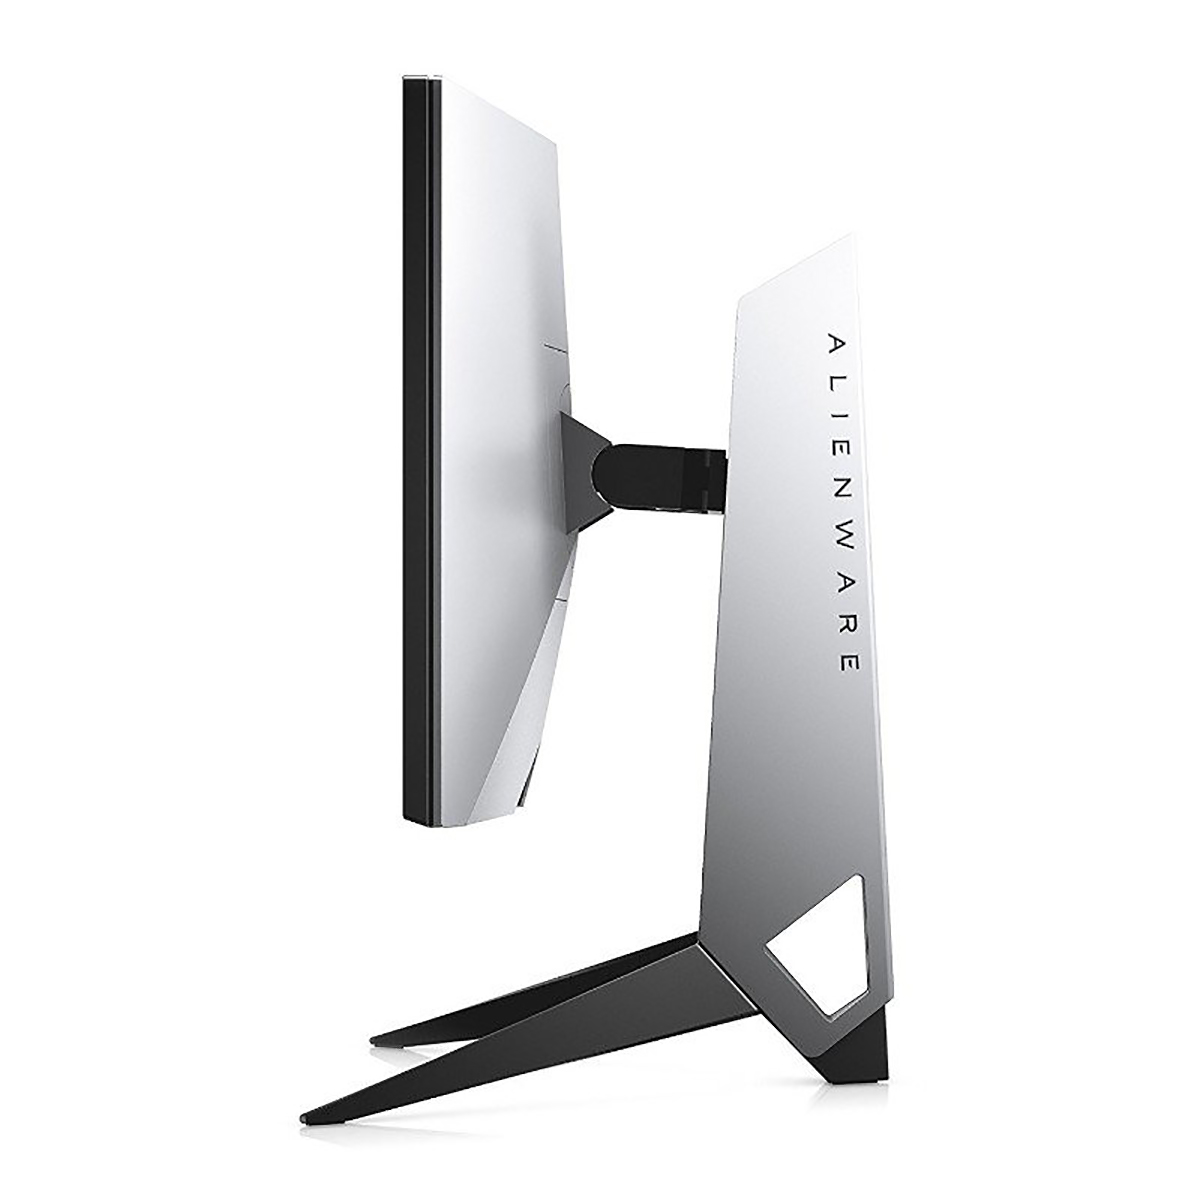 Dell Alienware AW2518H 25 Inch LCD Full HD 240Hz Gaming Monitor